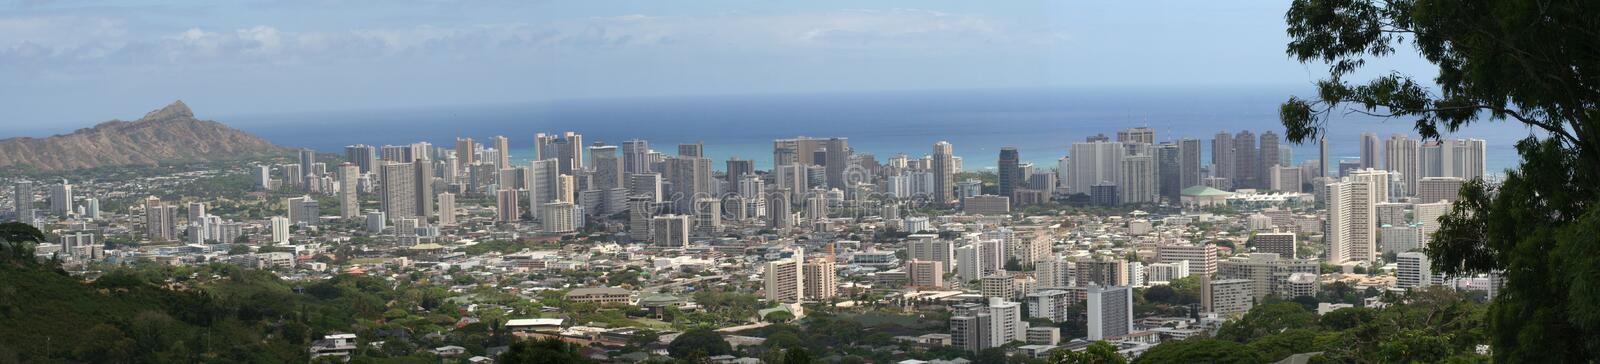 Panorama de Honolulu/Waikiki fotografia de stock royalty free